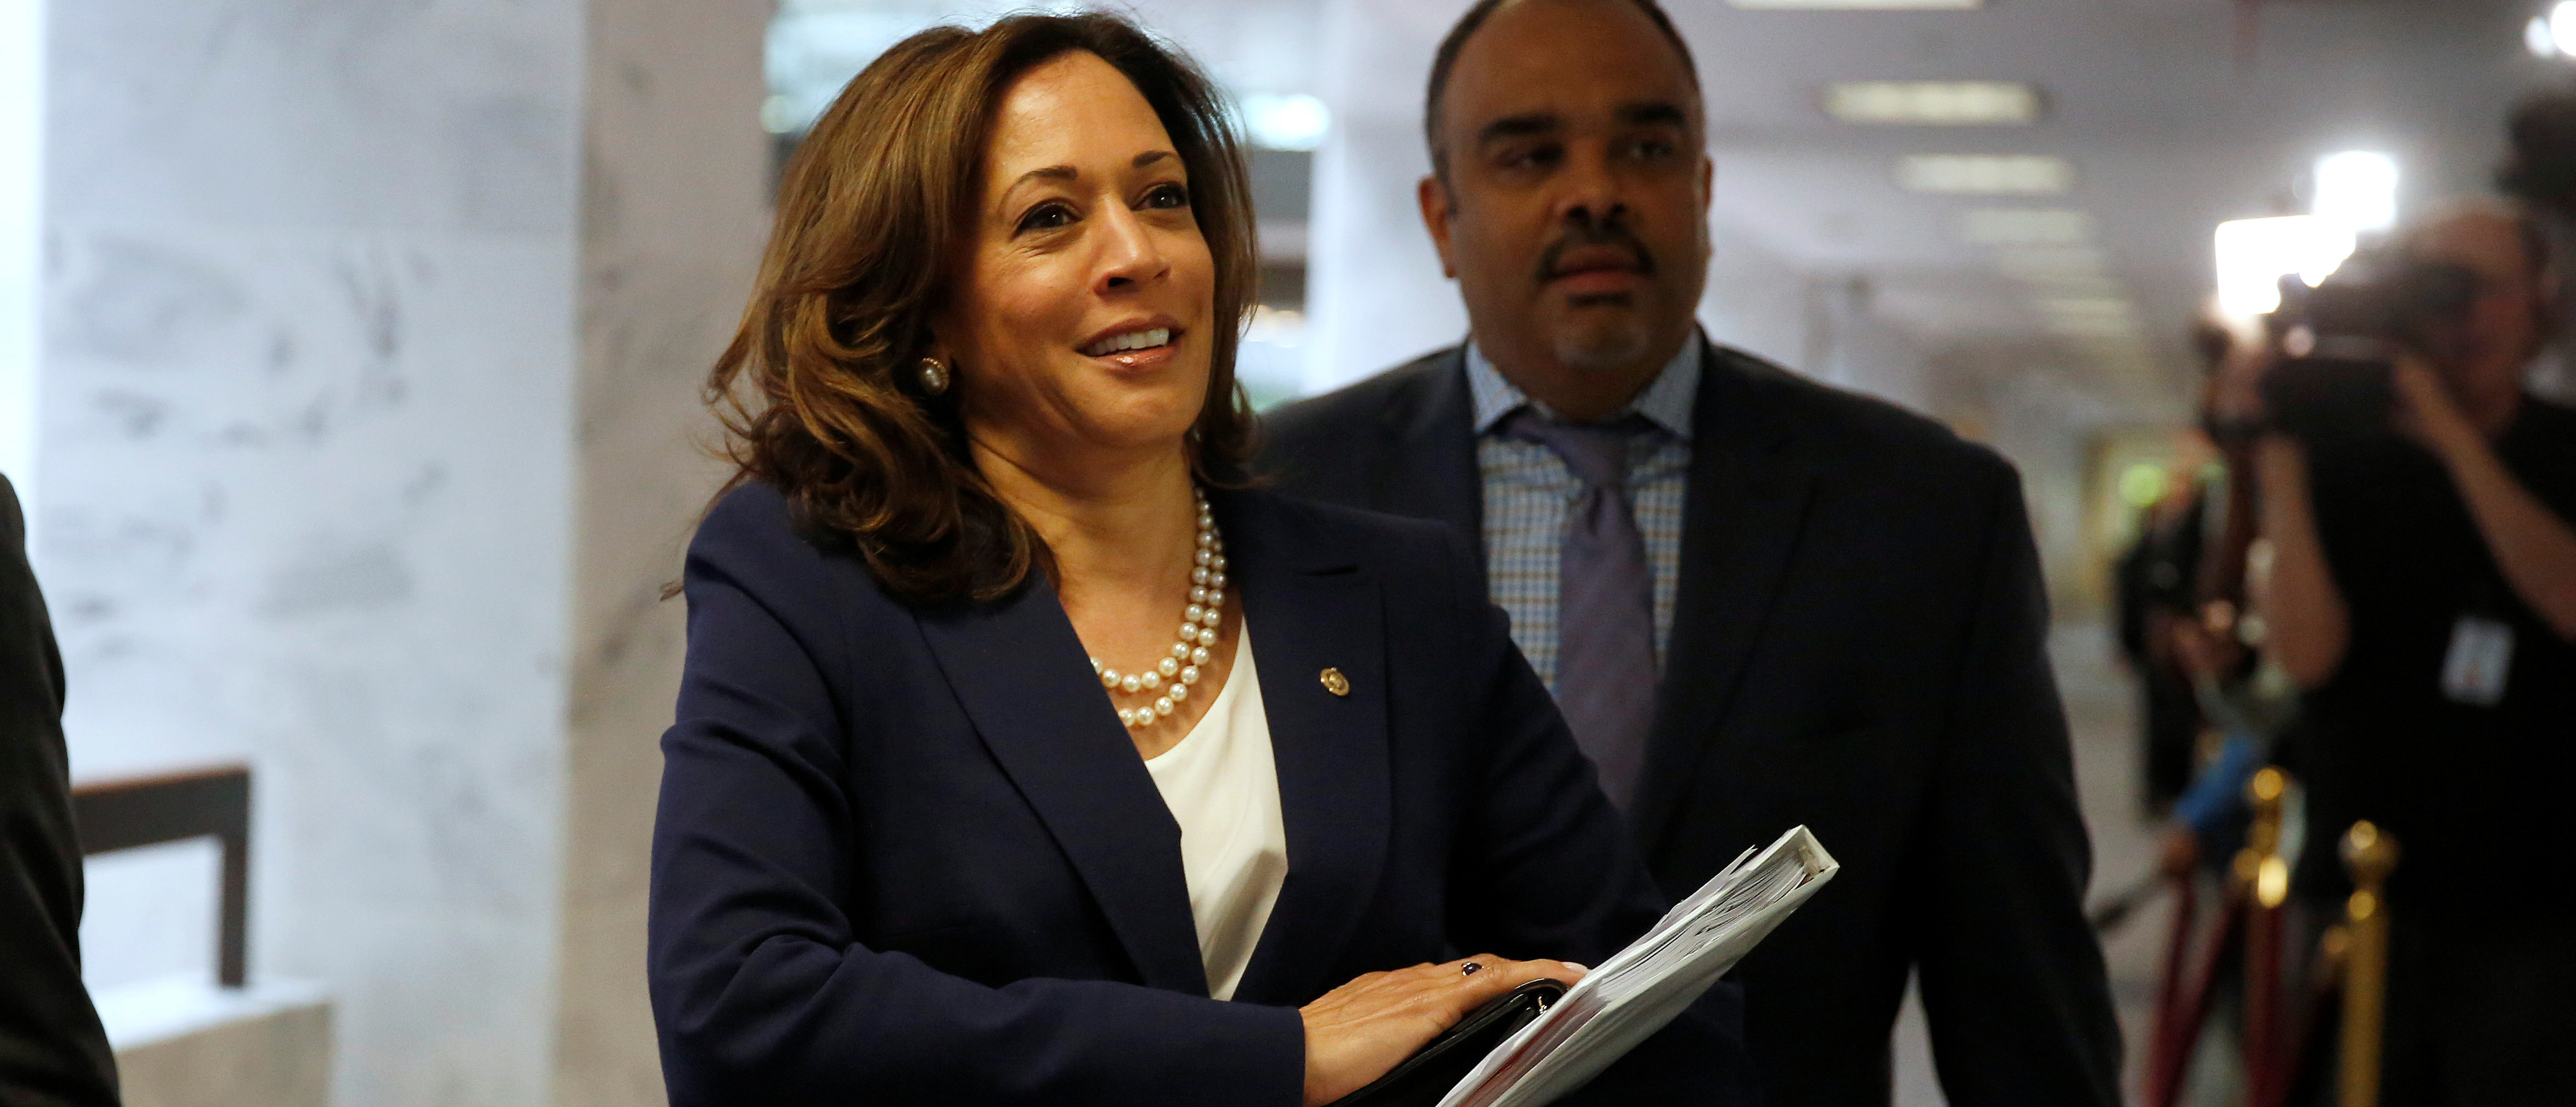 """Senator Kamala Harris (D-CA) arrives for a Senate Intelligence Committee hearing evaluating the Intelligence Community Assessment on """"Russian Activities and Intentions in Recent US Elections"""" on Capitol Hill in Washington, May 16, 2018.      REUTERS/Joshua Roberts"""